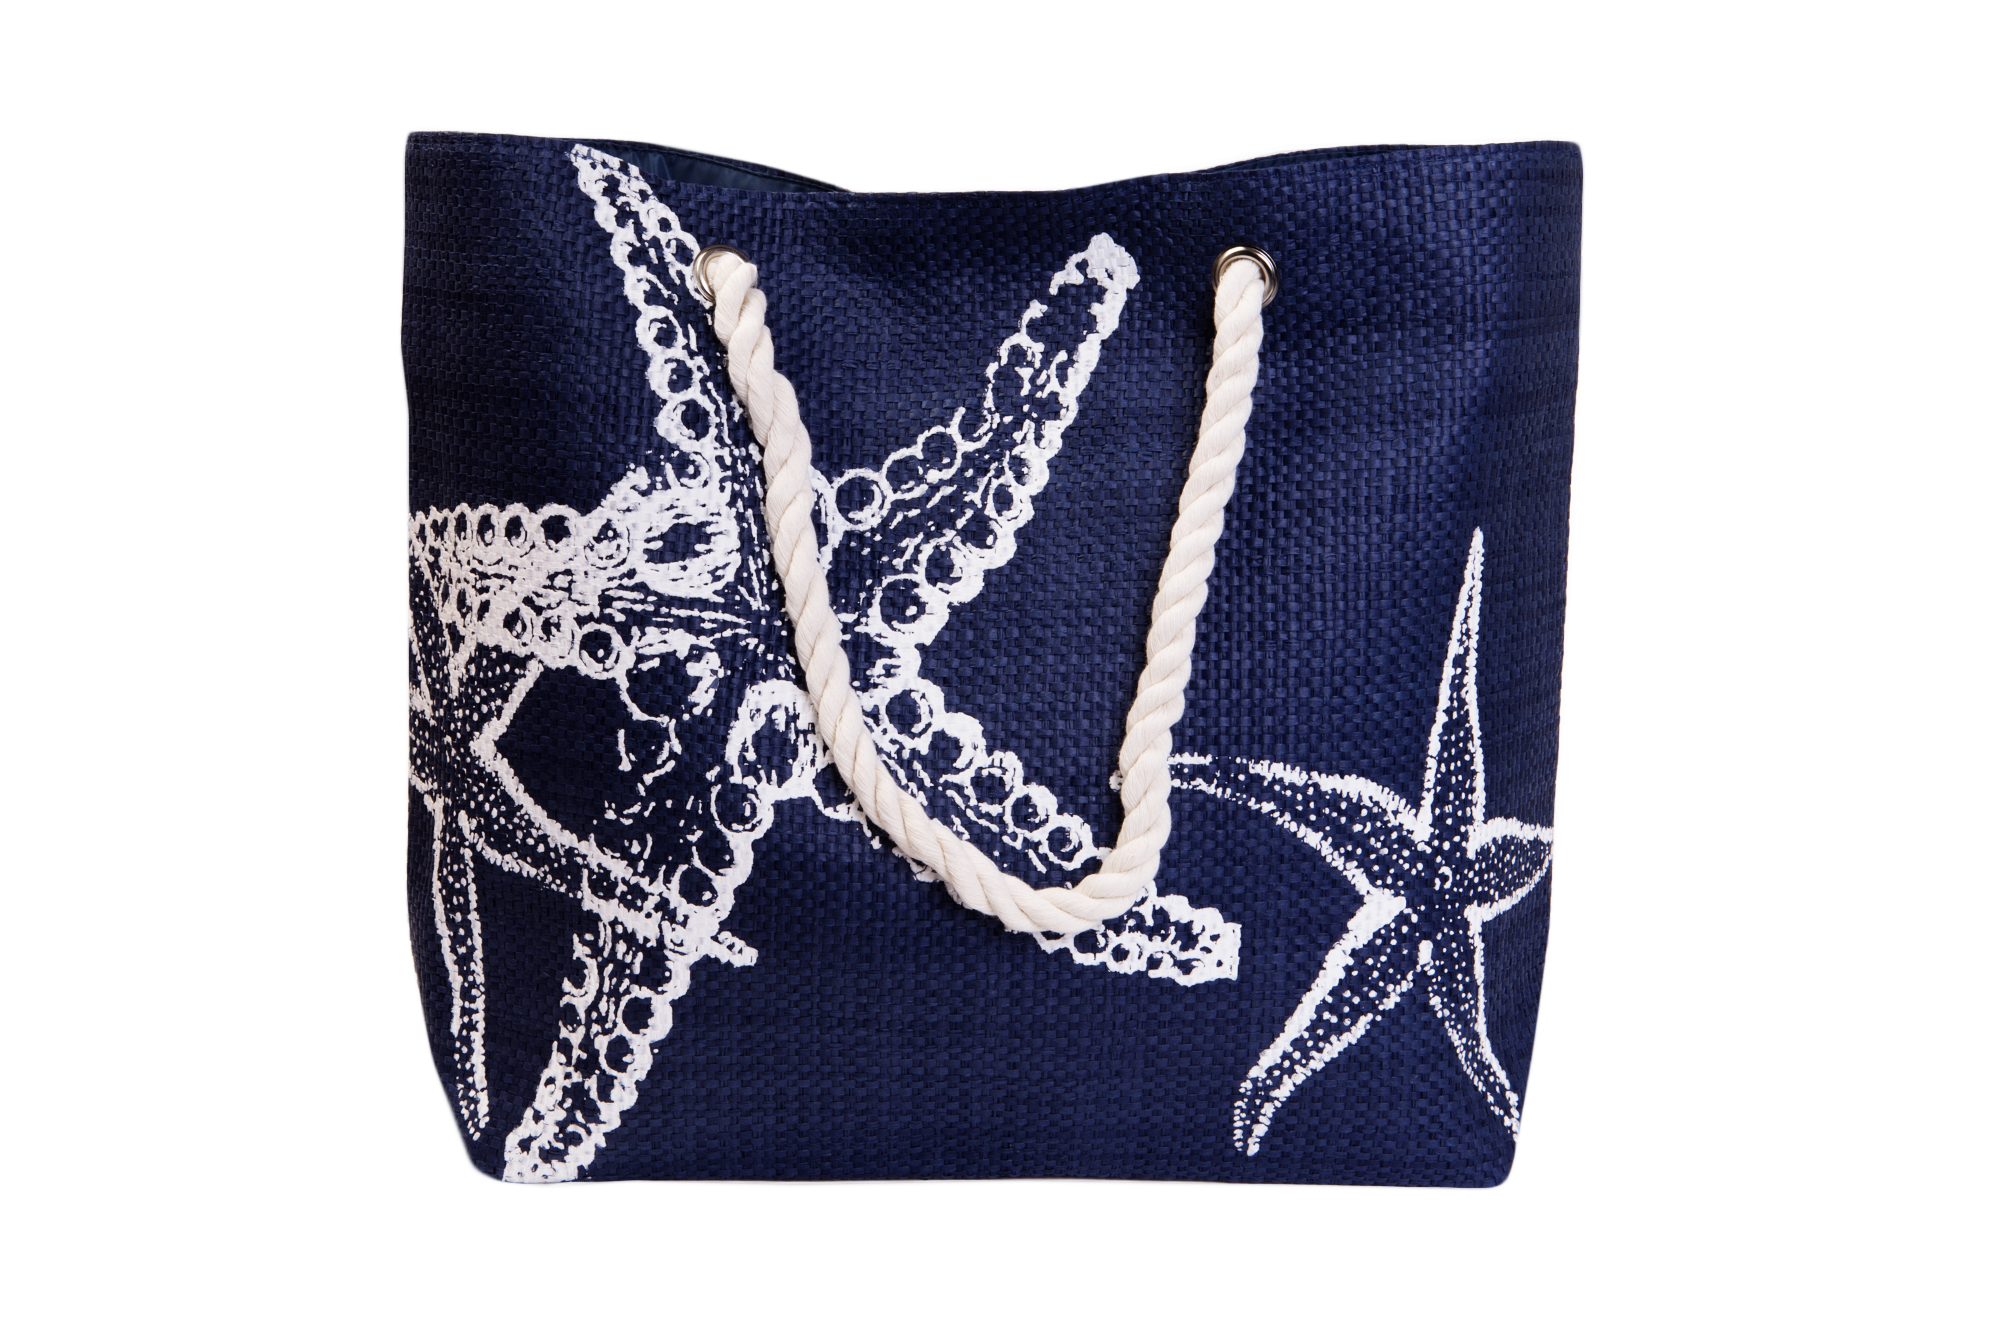 Straw Beach Bags W/ Pocket - Navy Starfish